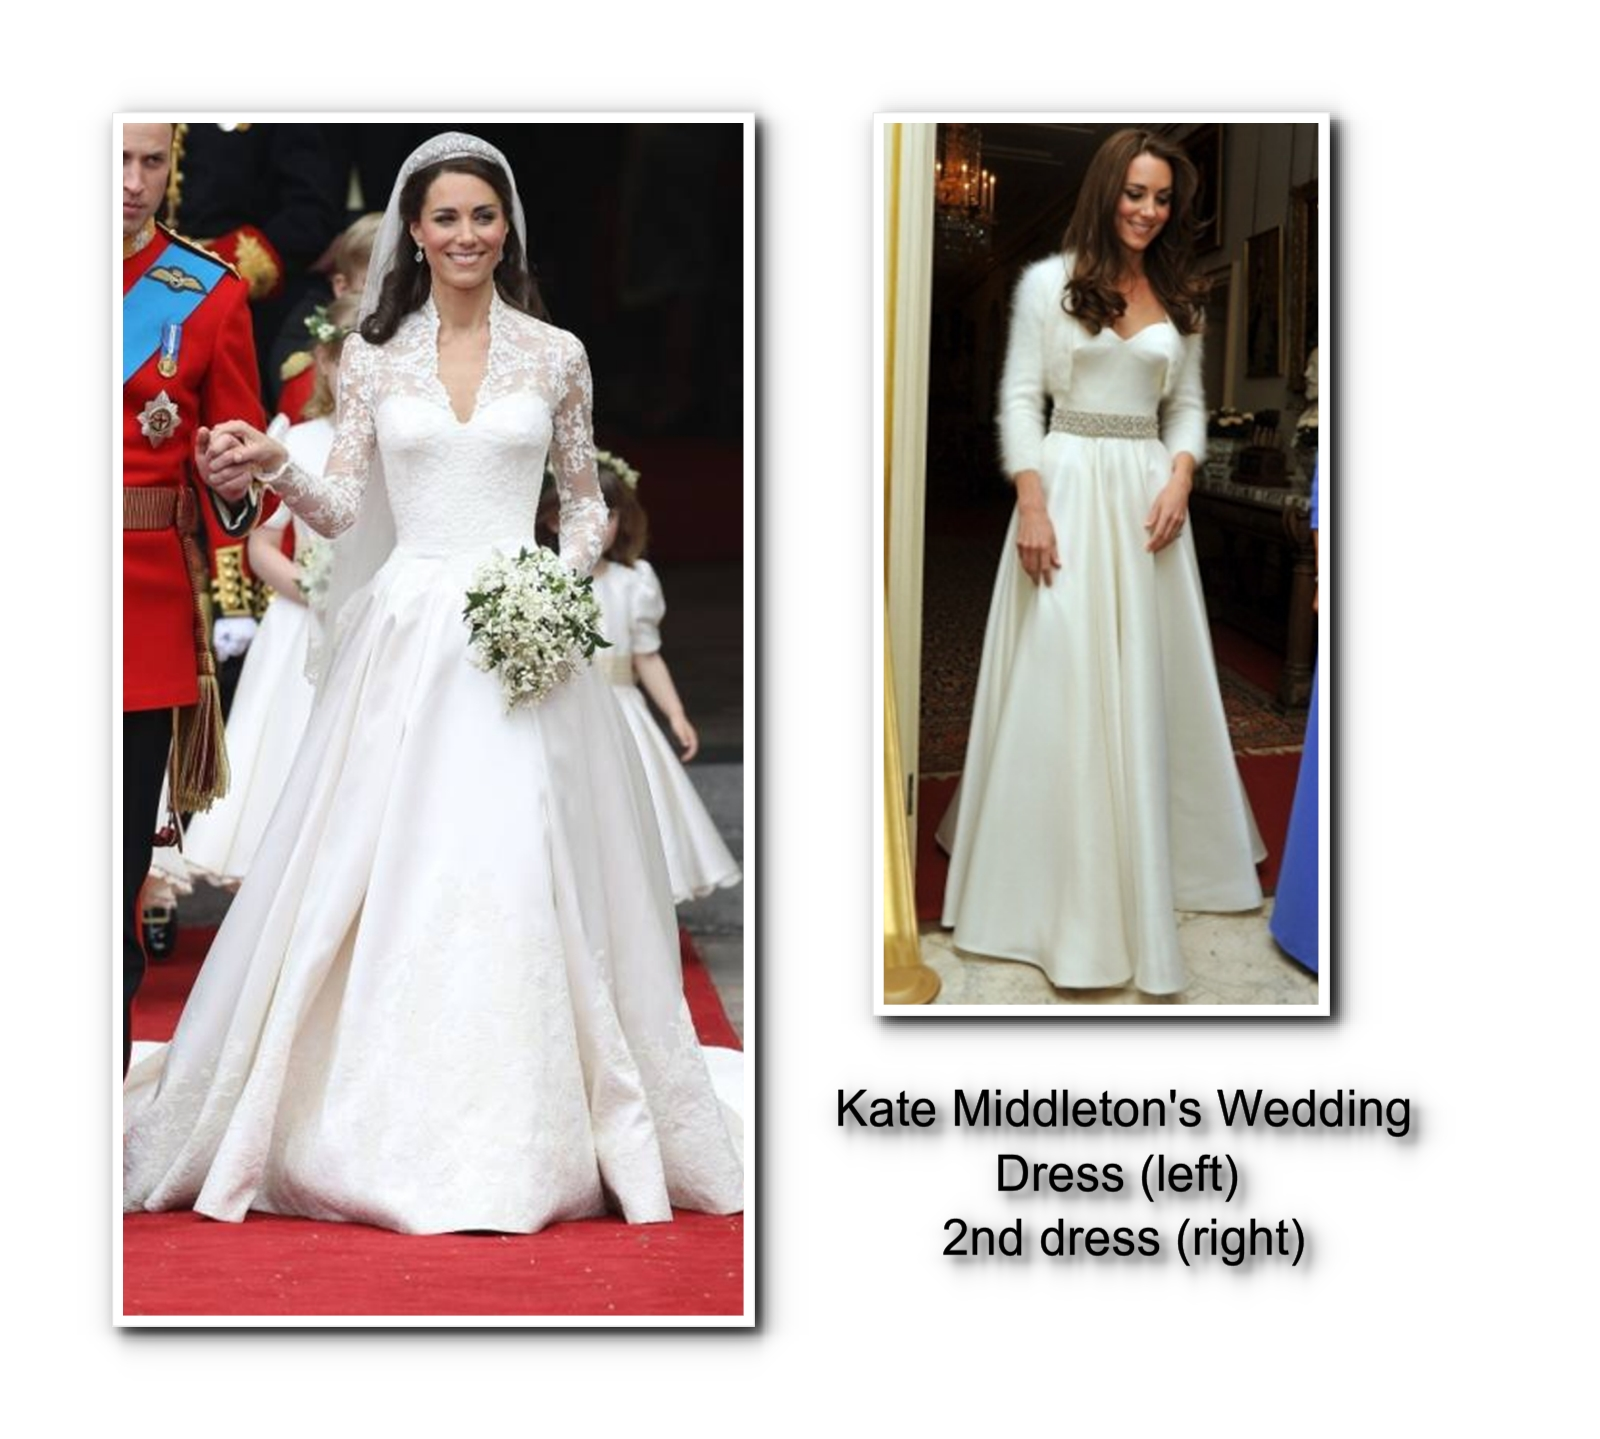 classic wedding dresses from the lbe bride to kate middleton and reese witherspoon